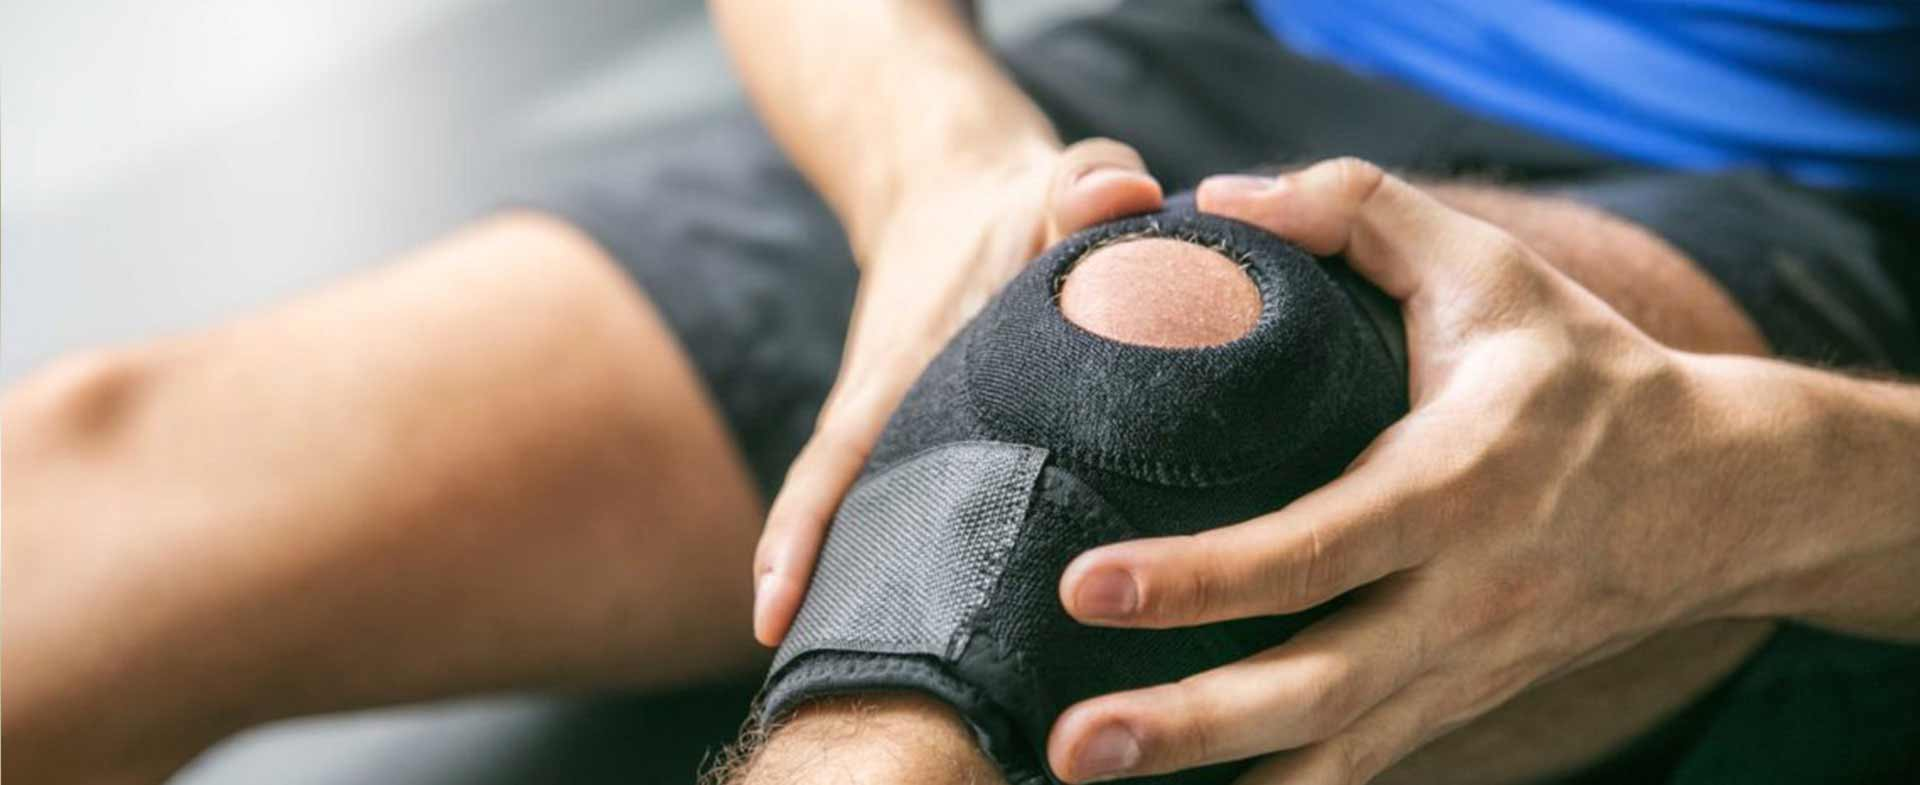 summer sports injuries 1140x570